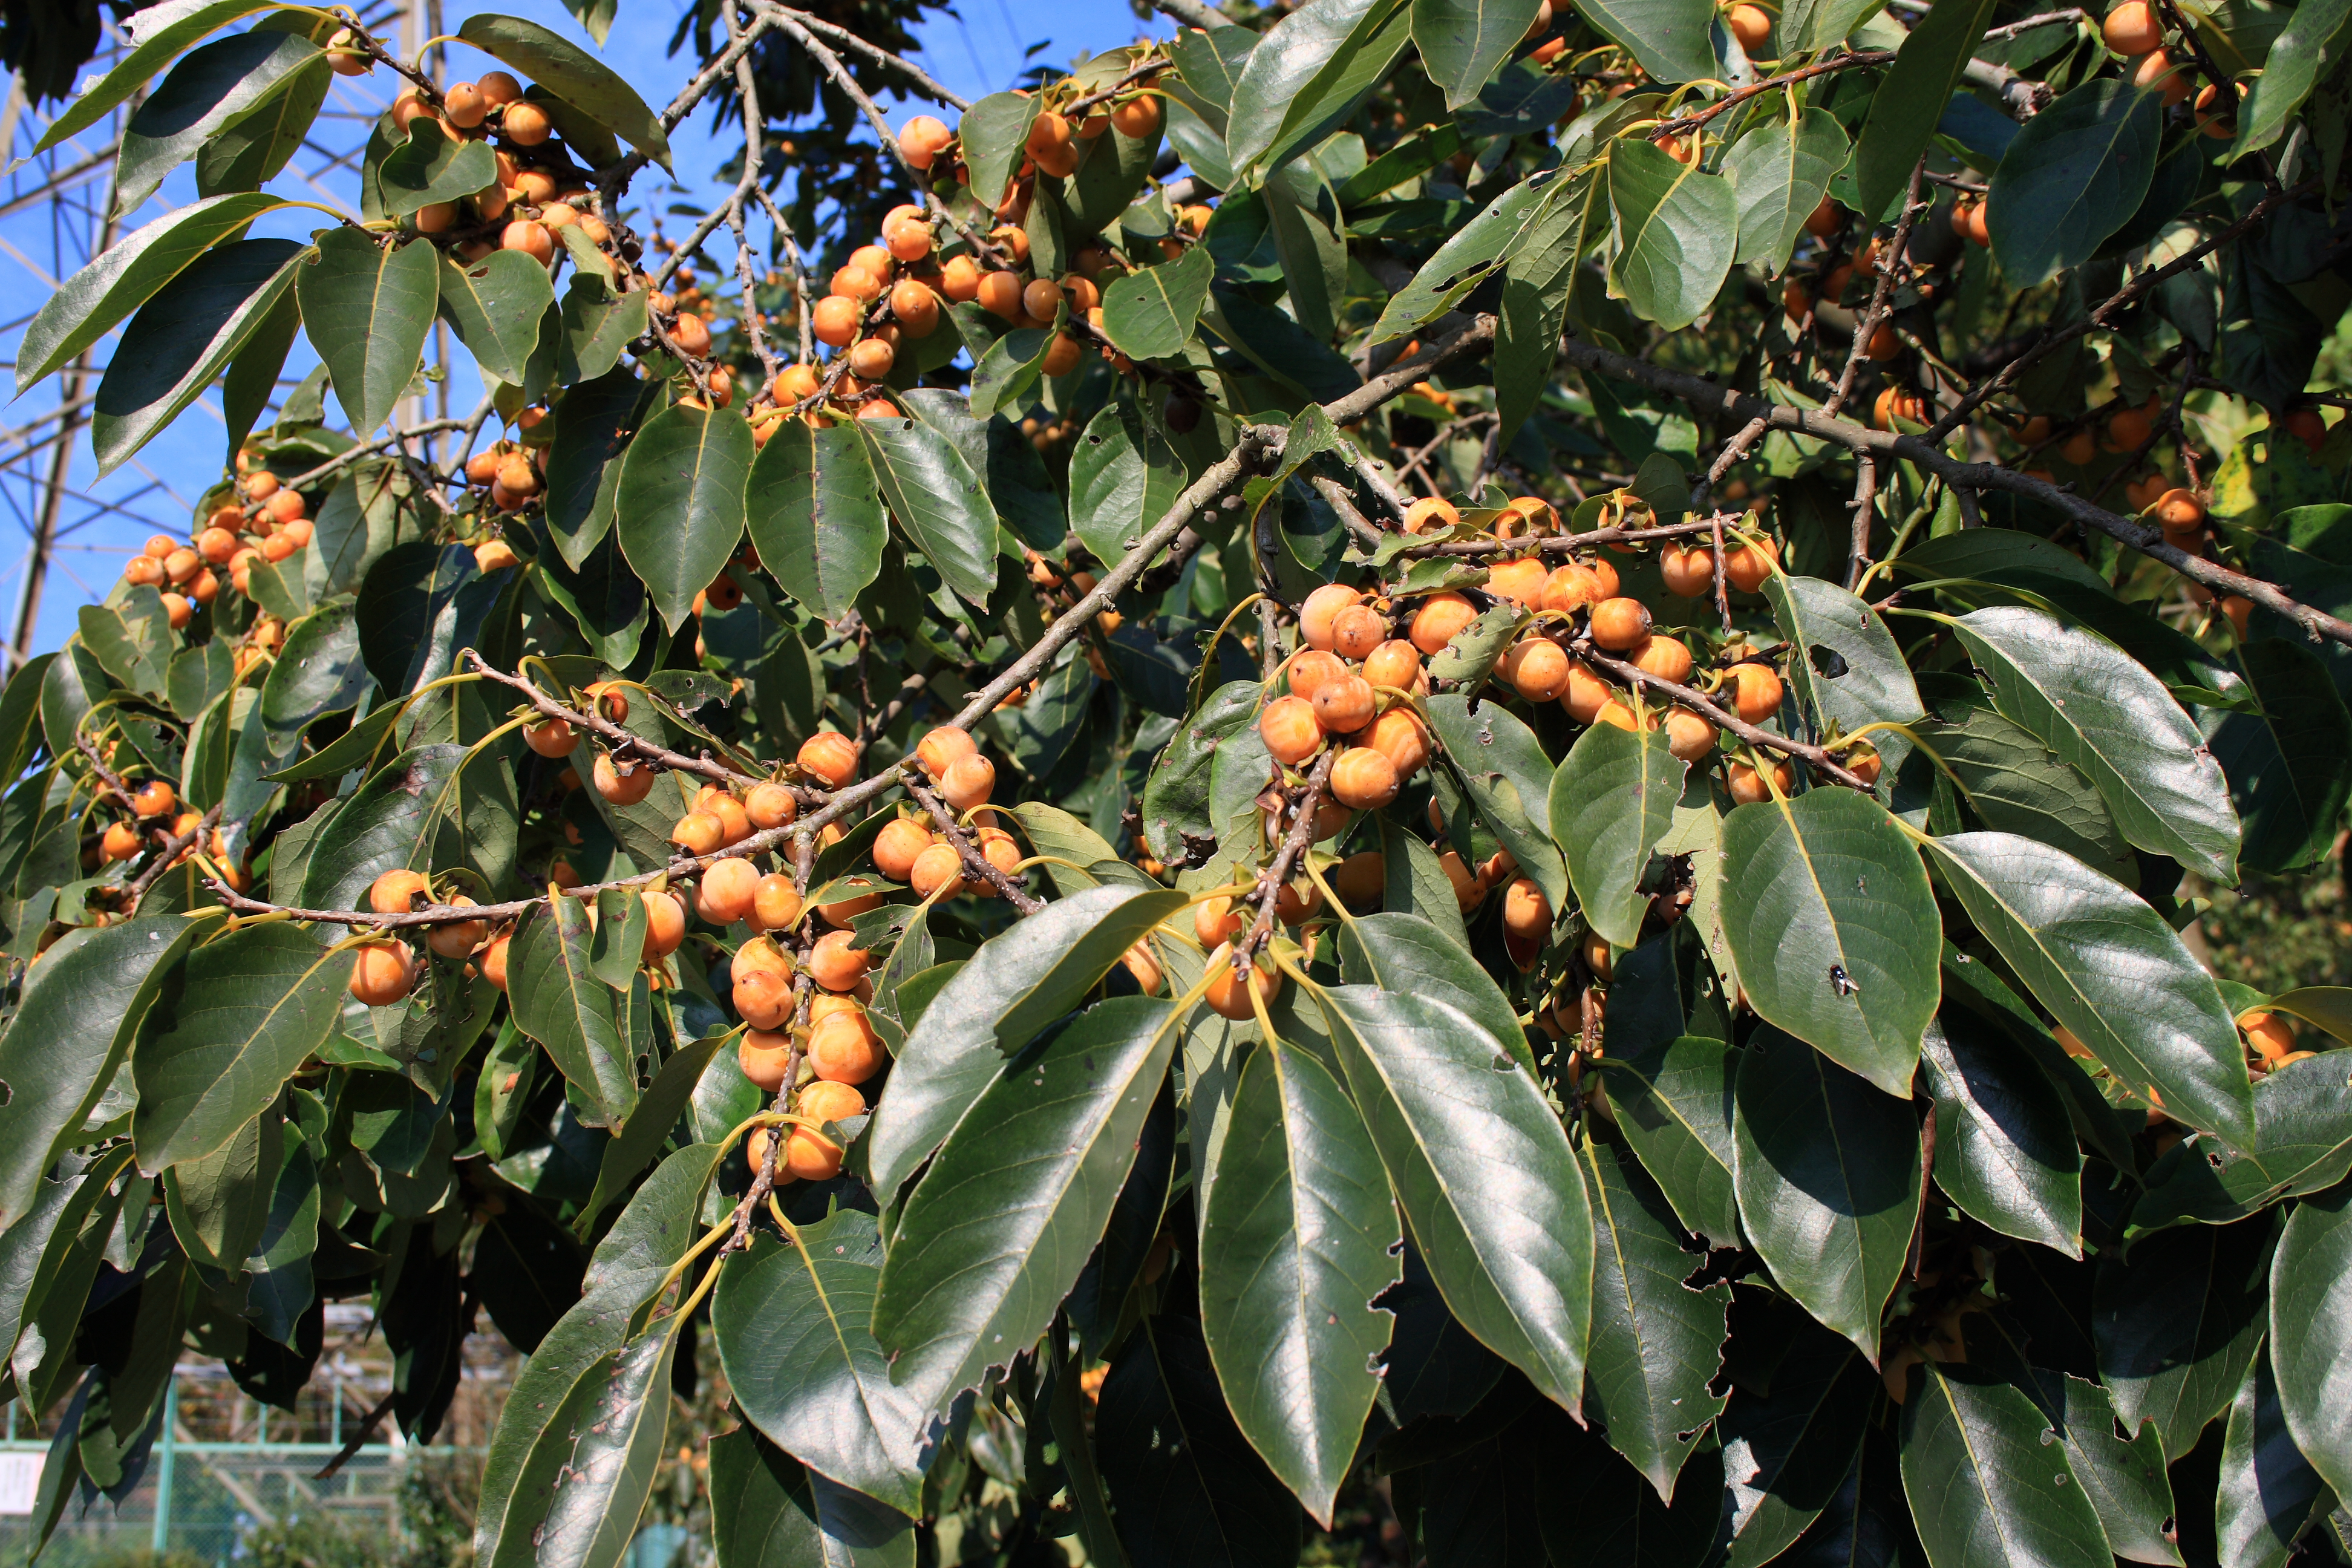 File:Diospyros lotus 01.jpg - Wikipedia, the free encyclopedia